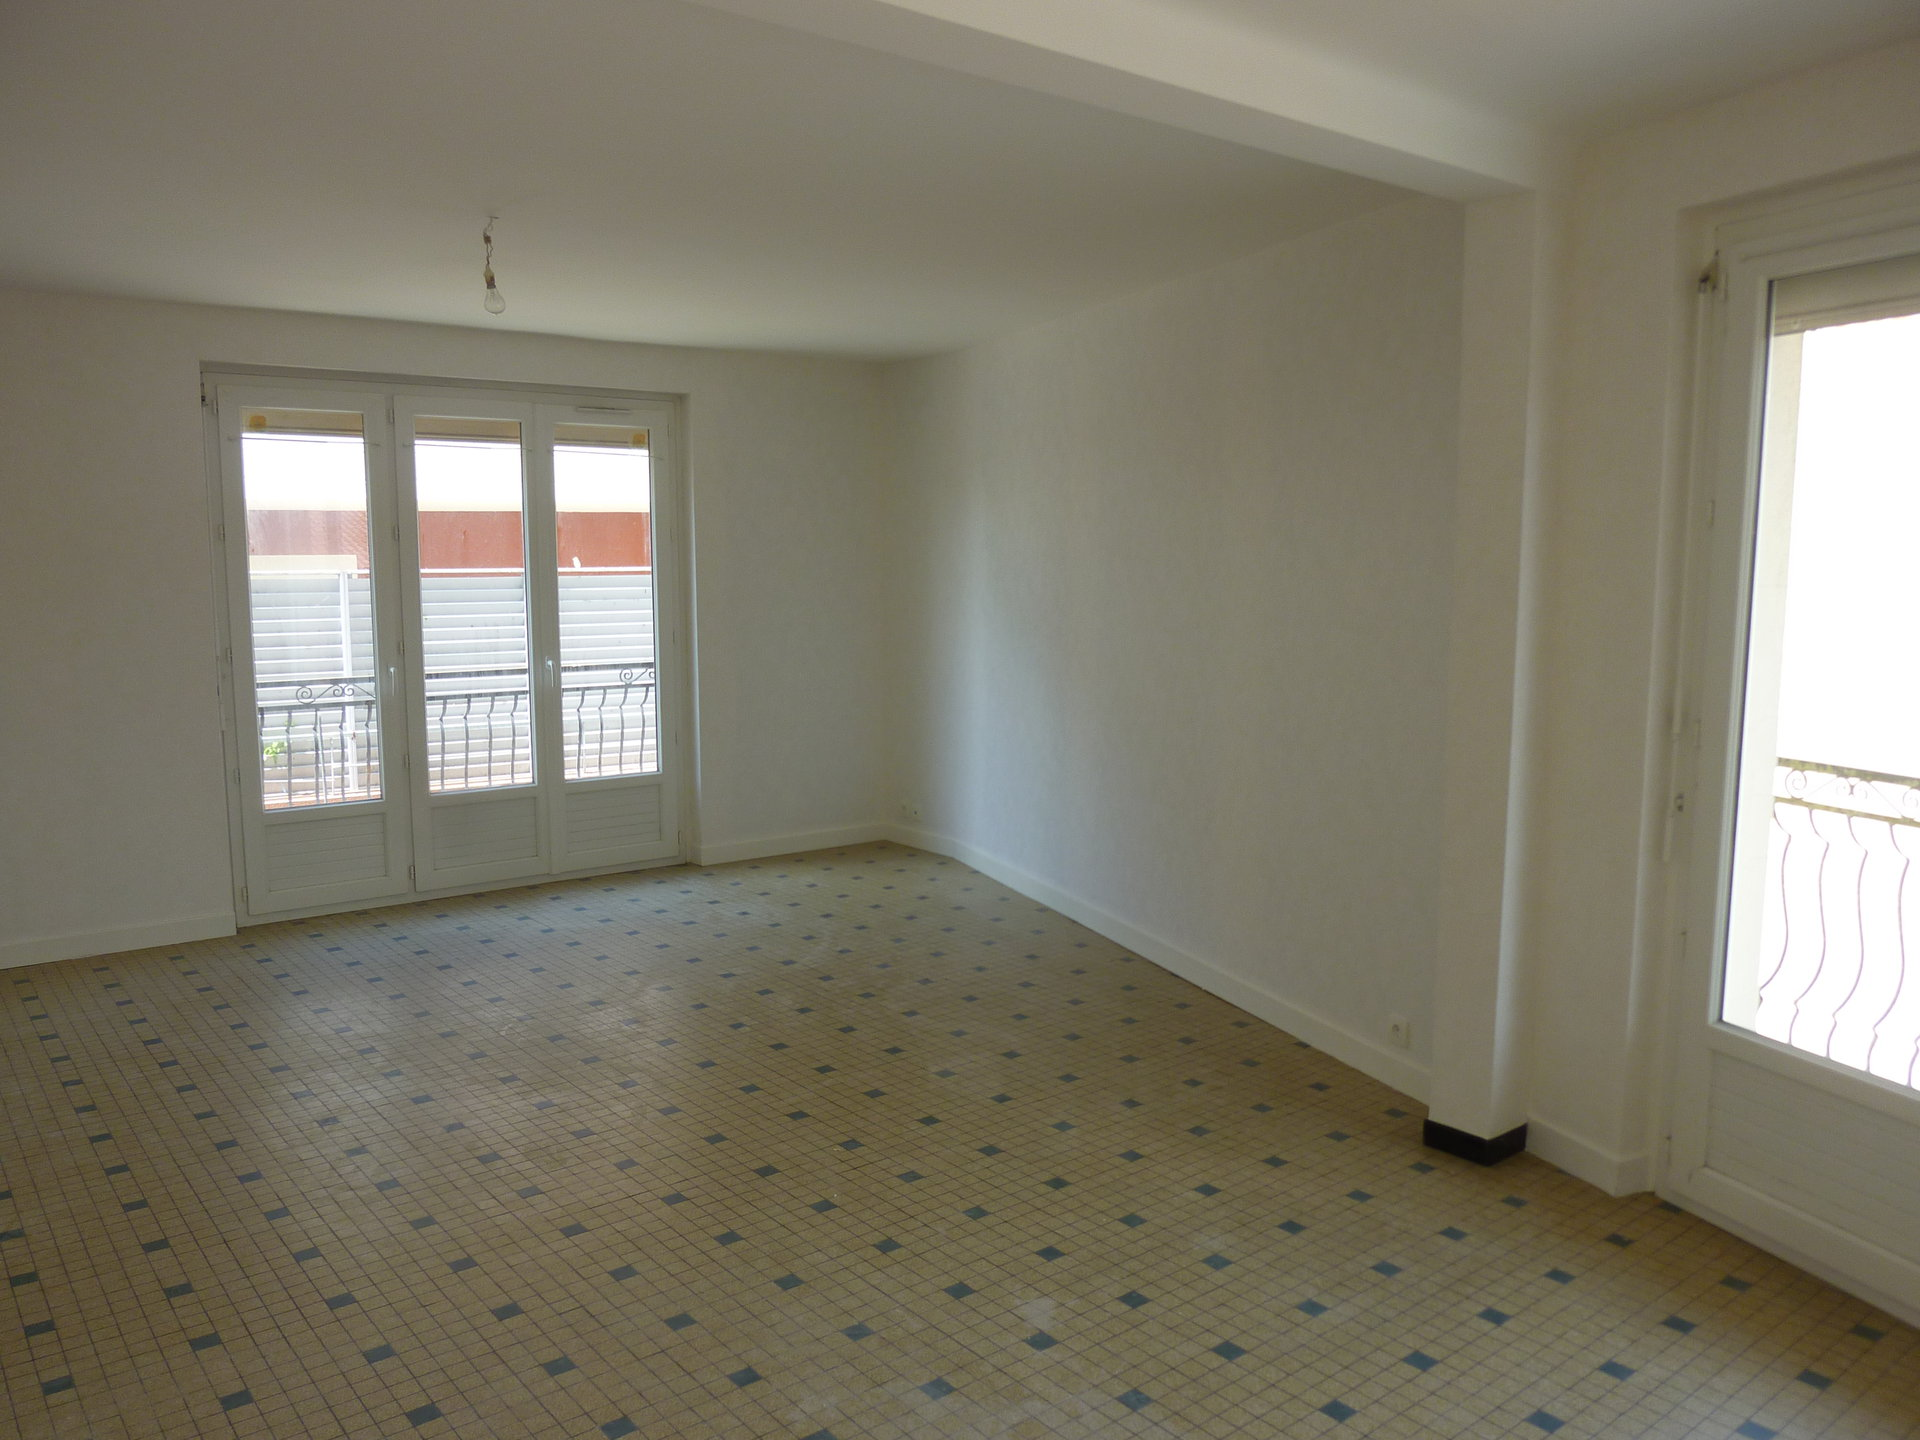 Three-room apartment (81 m²)